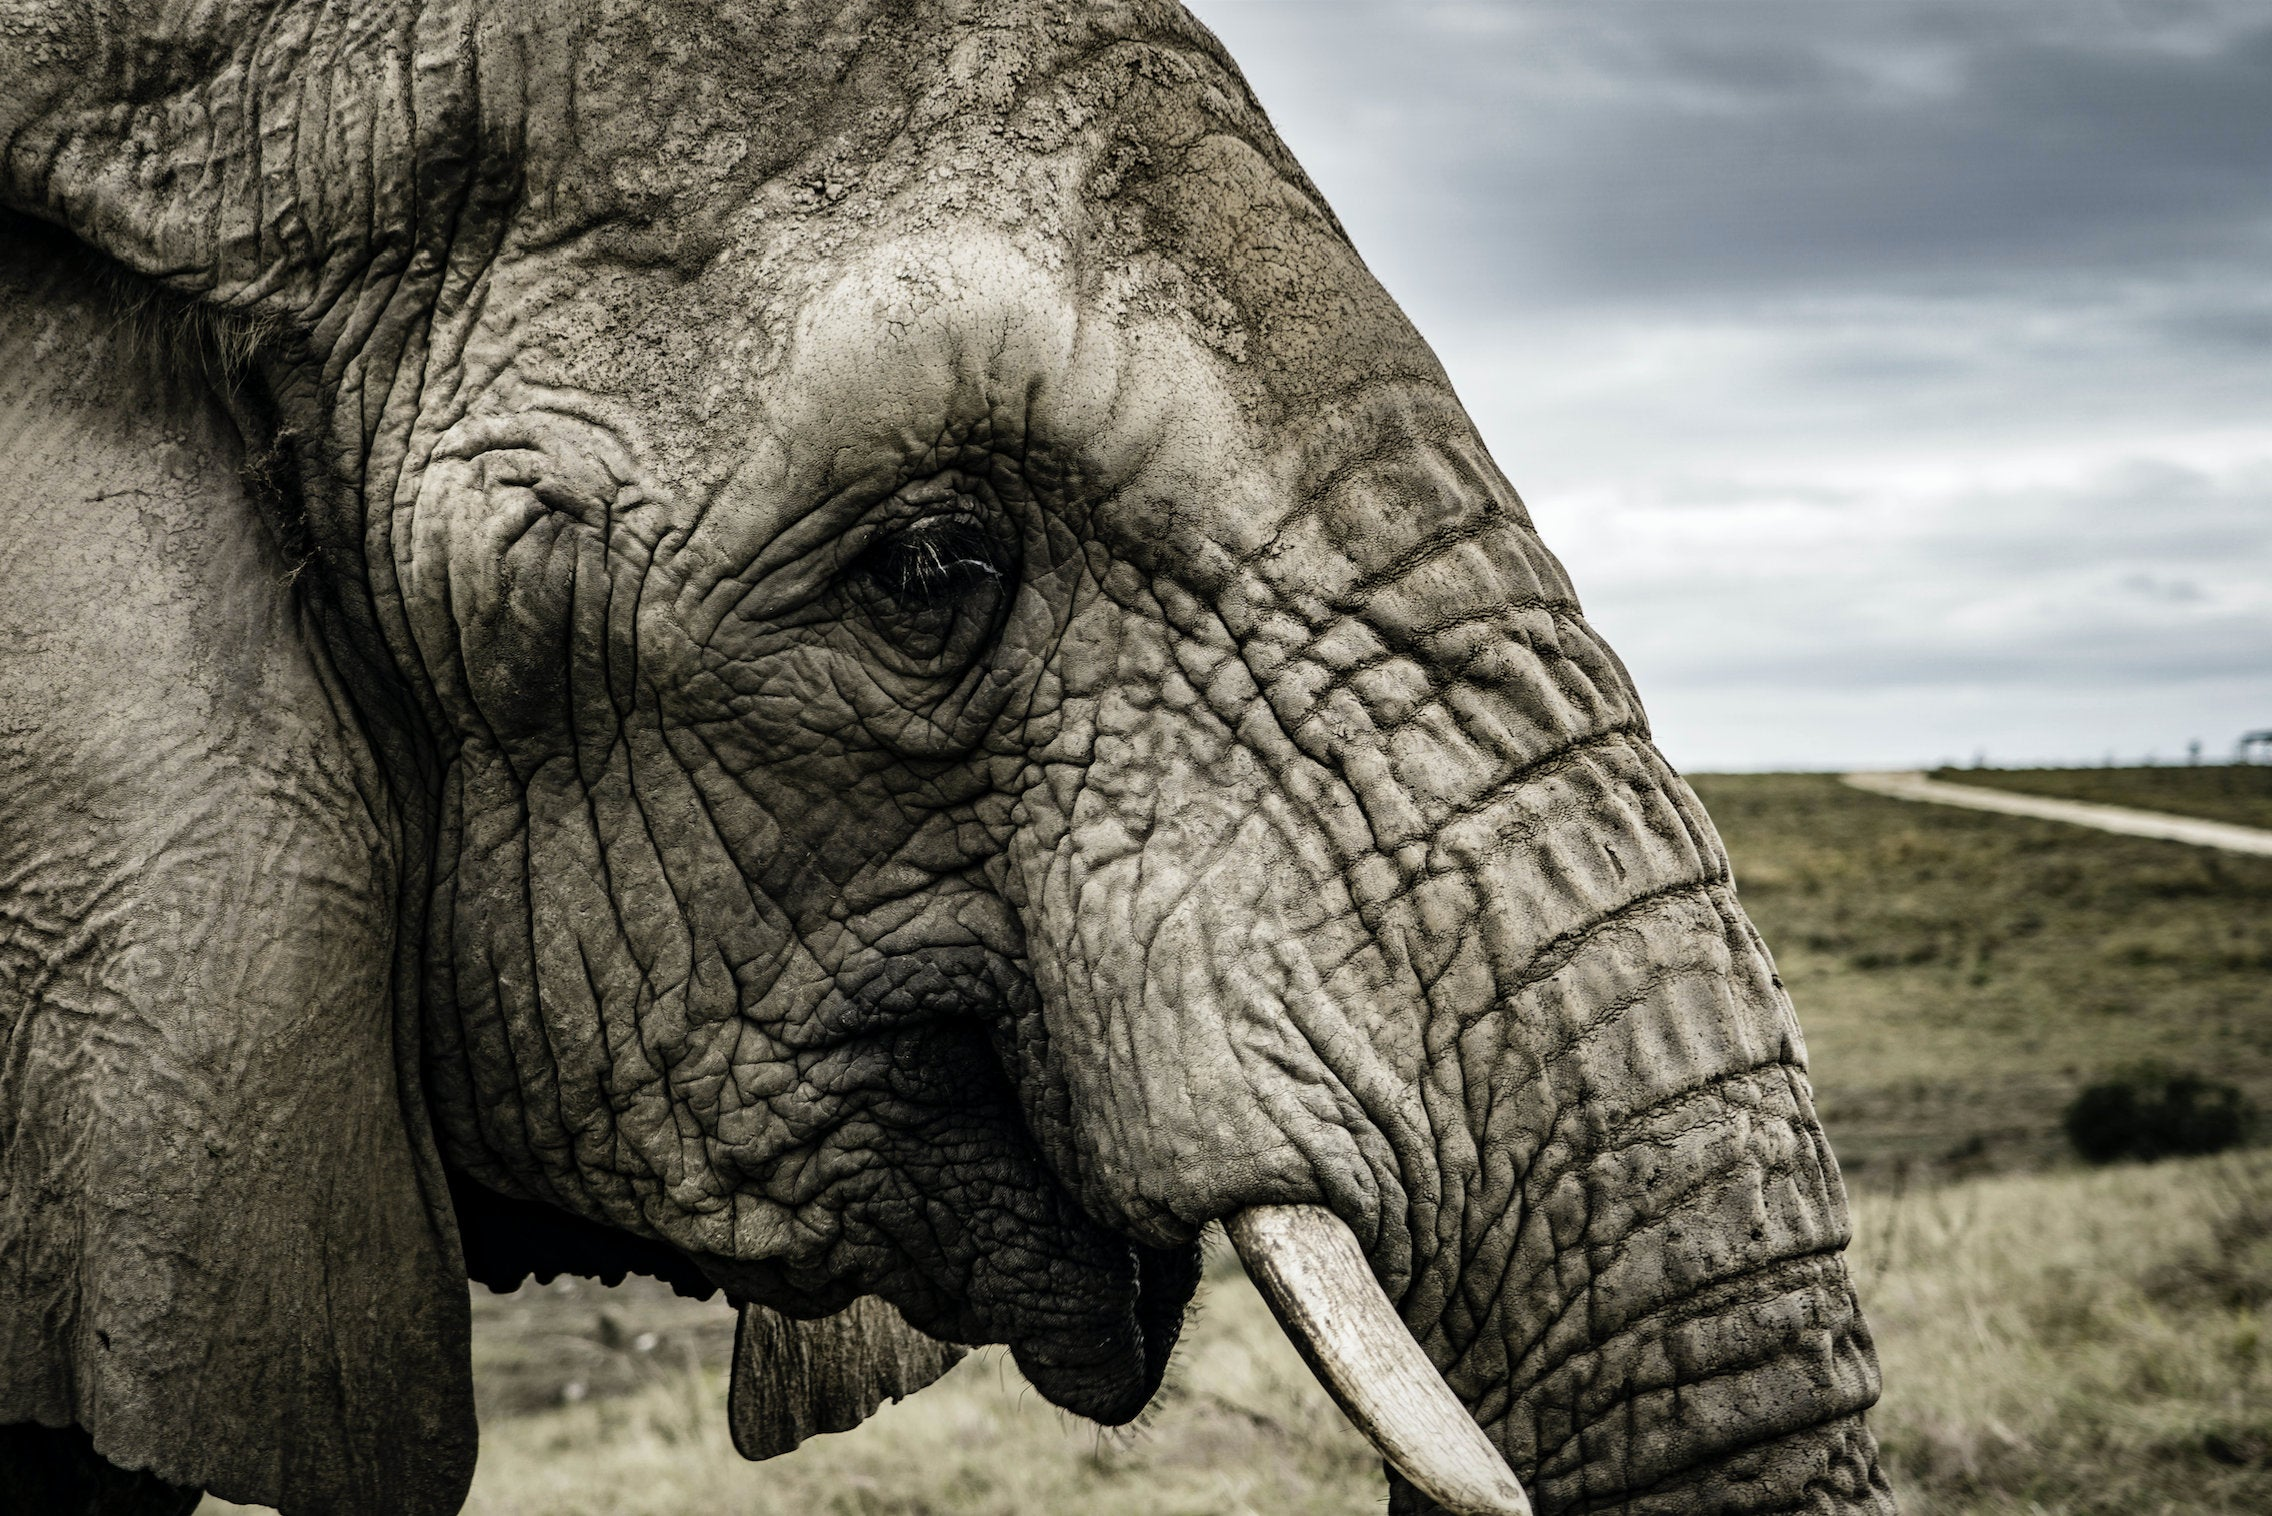 Elephants - South Africa - Triplicate